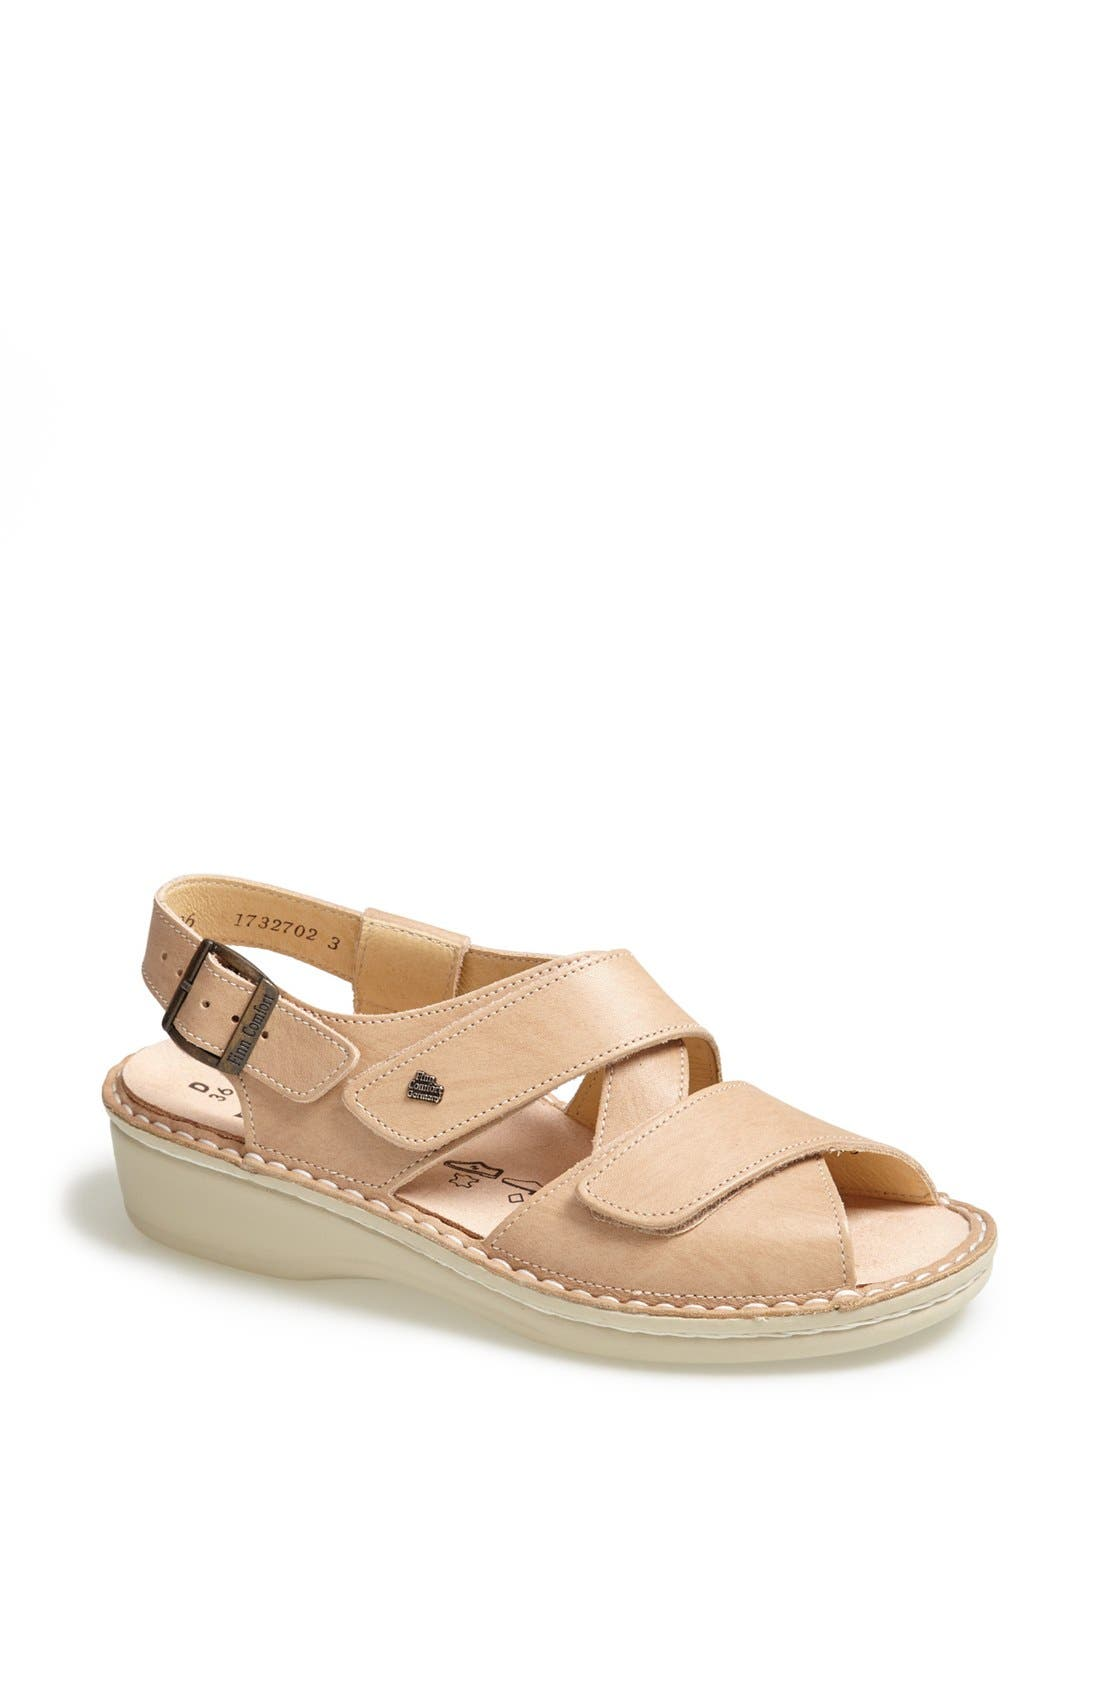 'Jersey' Sandal,                         Main,                         color, Stone